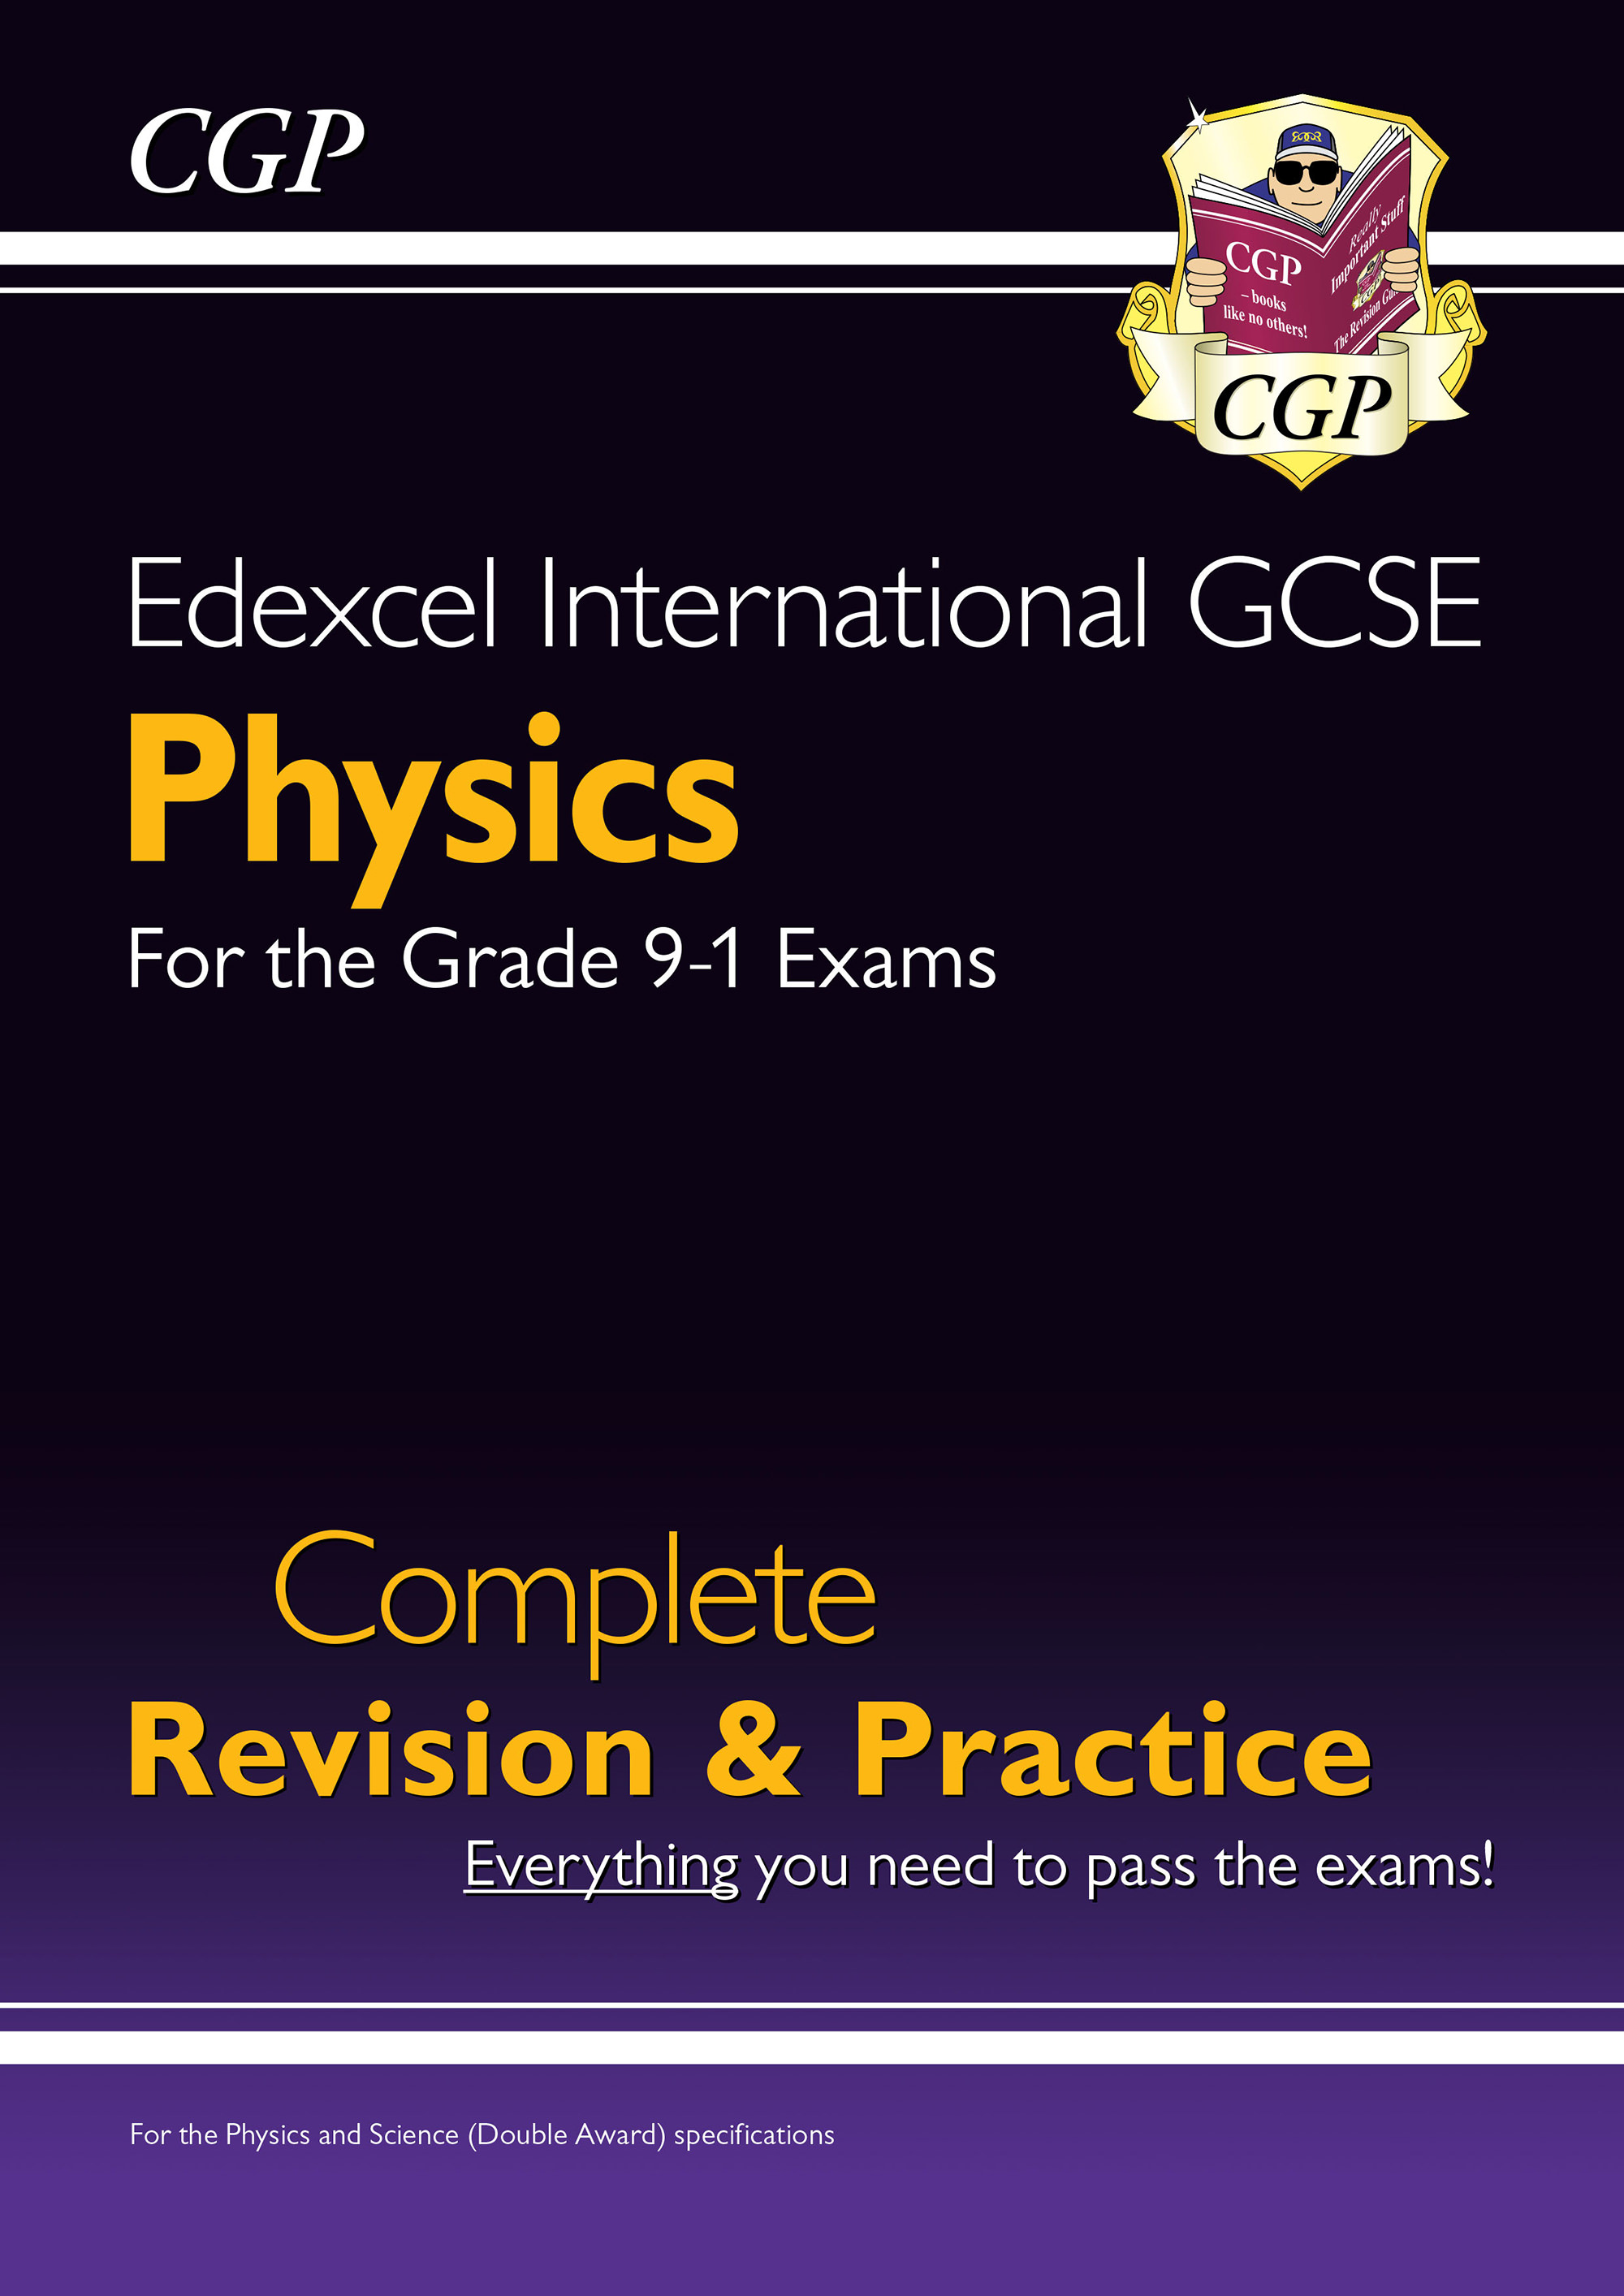 PESI42D - New Grade 9-1 Edexcel International GCSE Physics: Complete Revision & Practice Online Edit